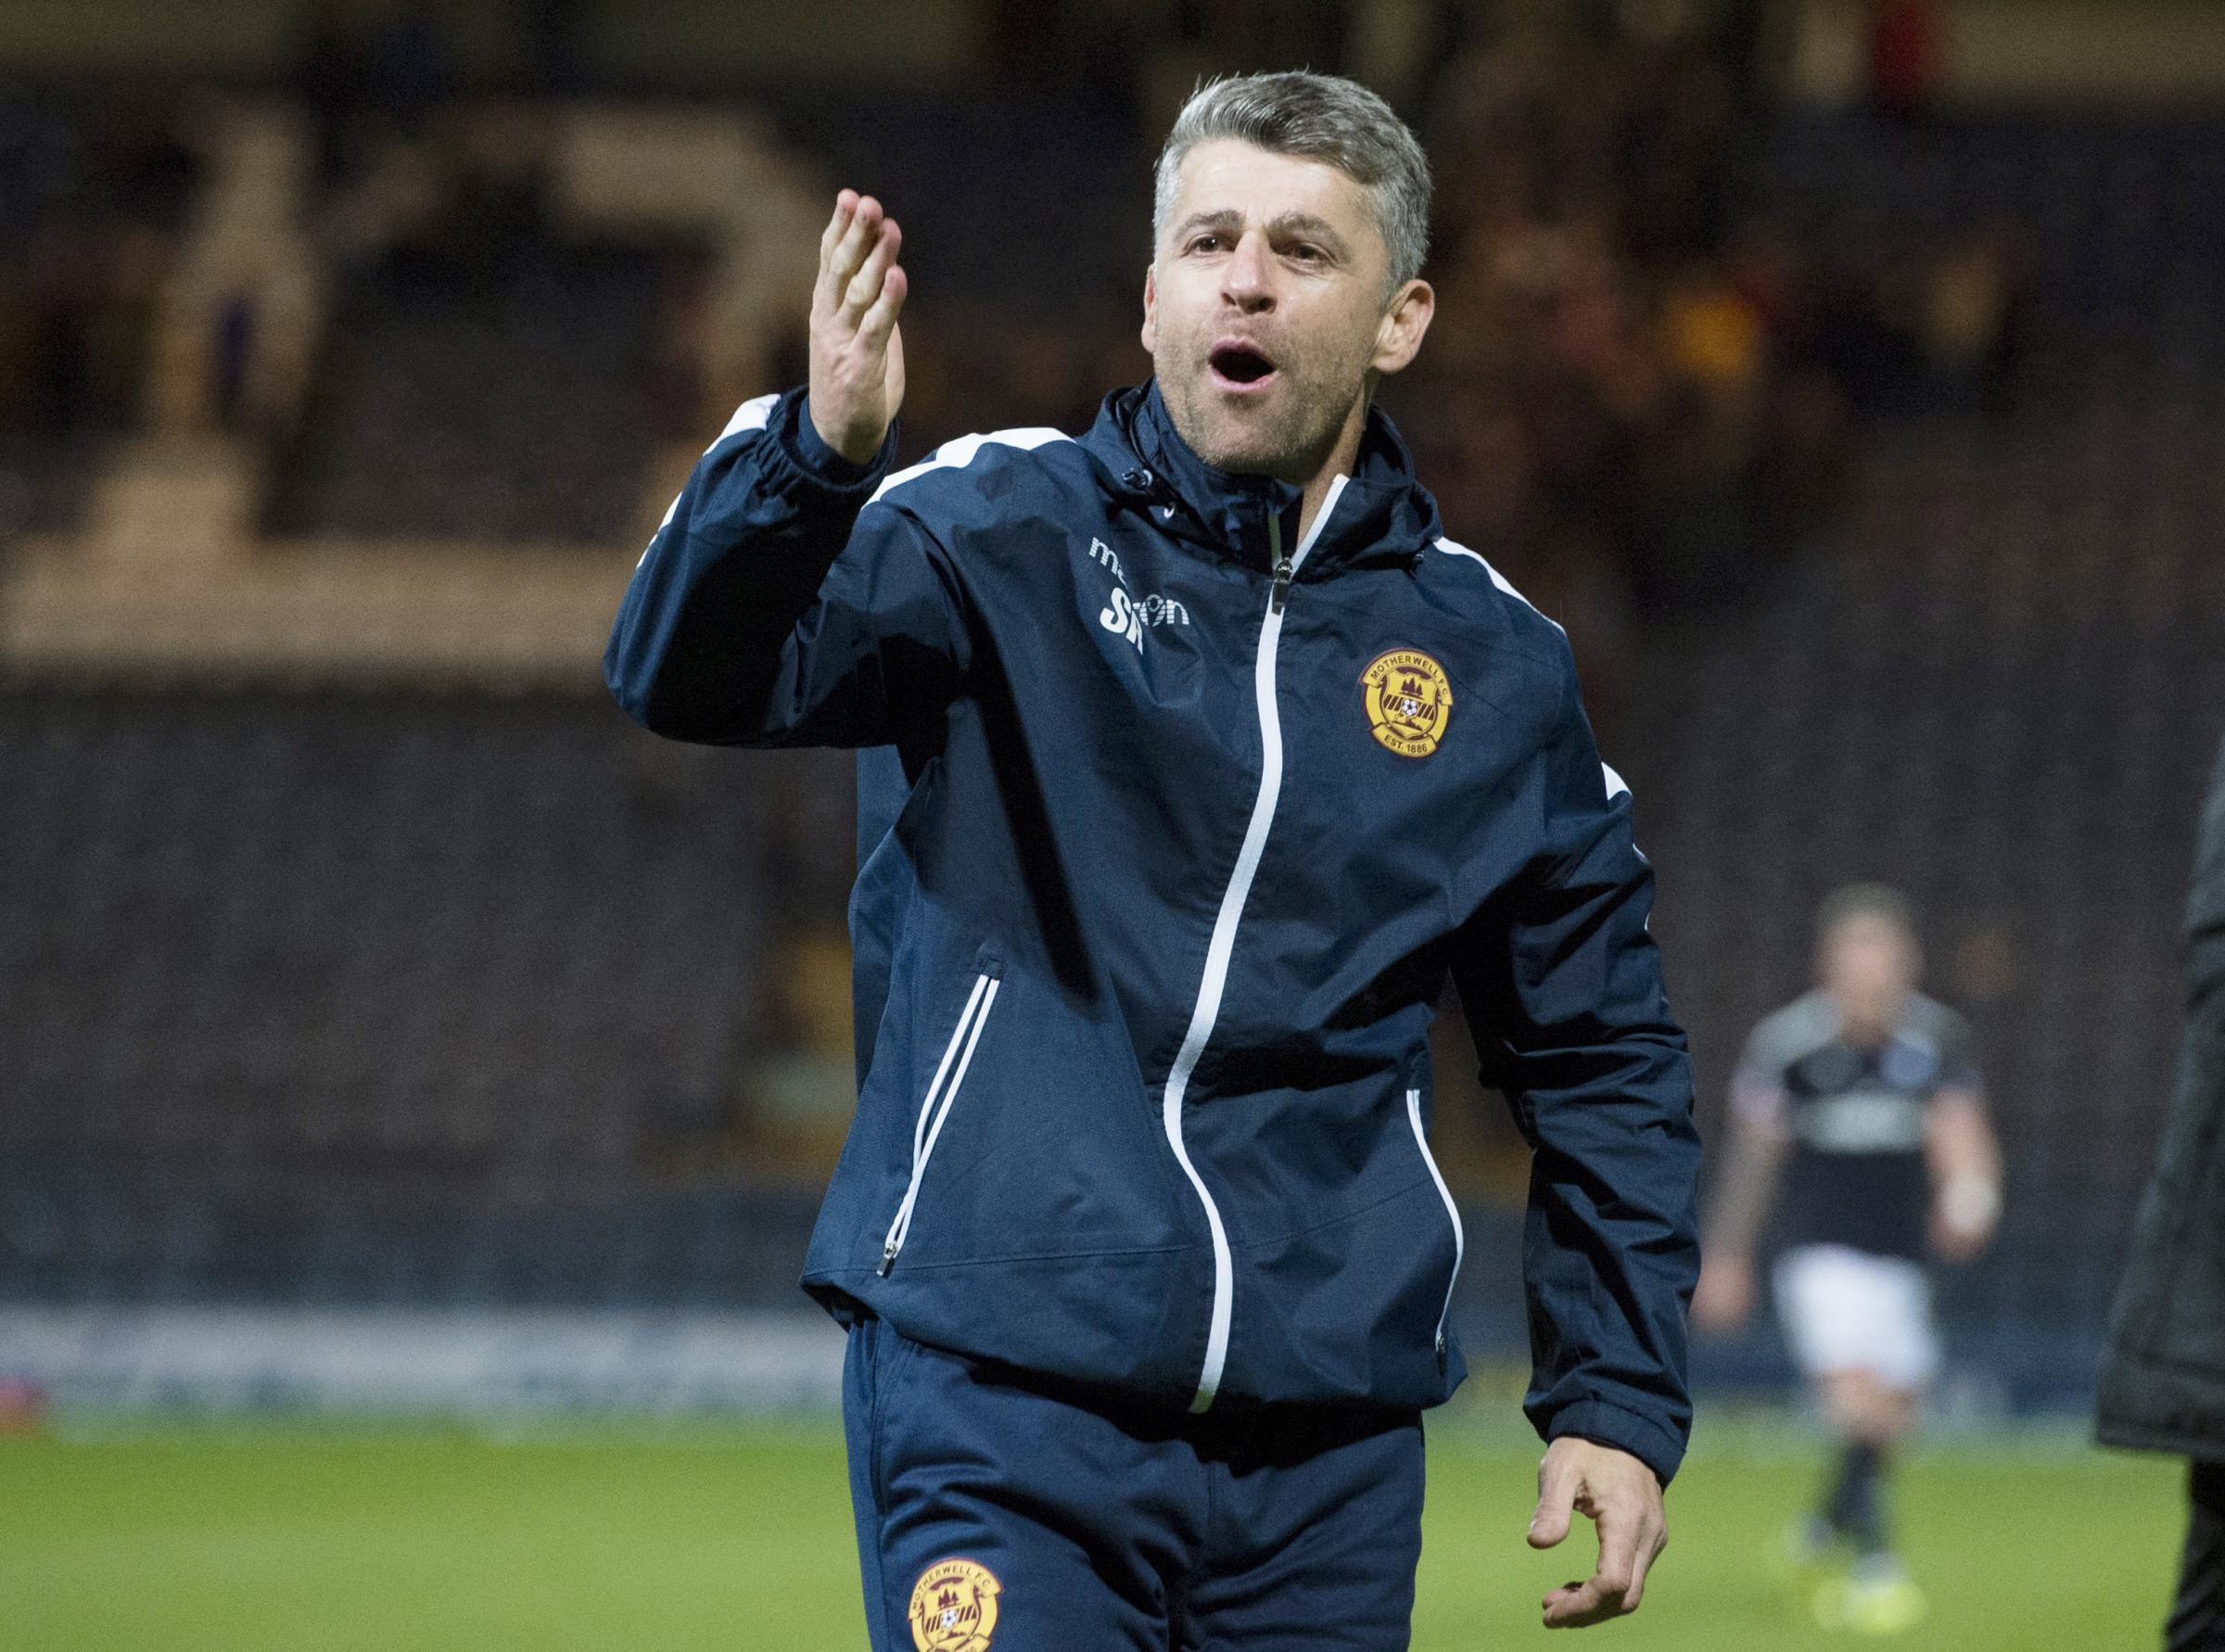 Stephen Robinson hopes that Motherwell can maintain their fine form against Hibs at Fir Park today.